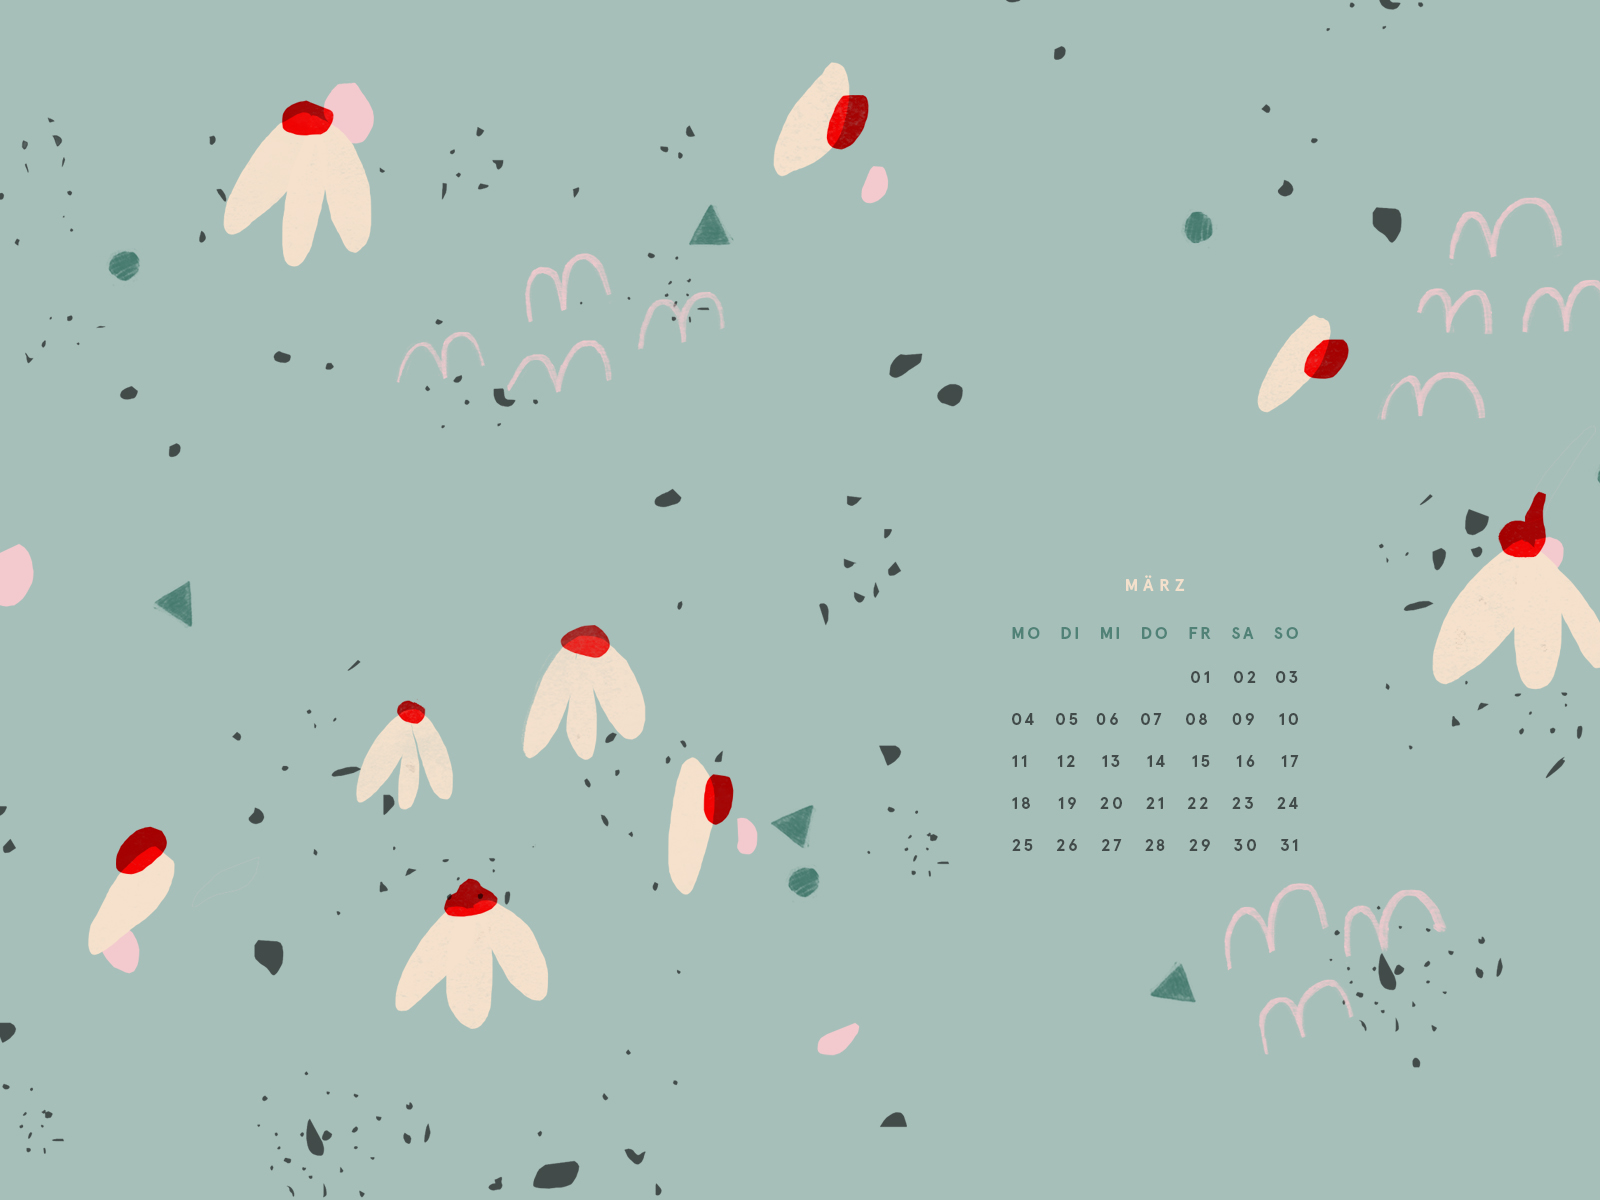 Free Desktop Wallpaper März 2019Free Desktop Wallpaper März 2019